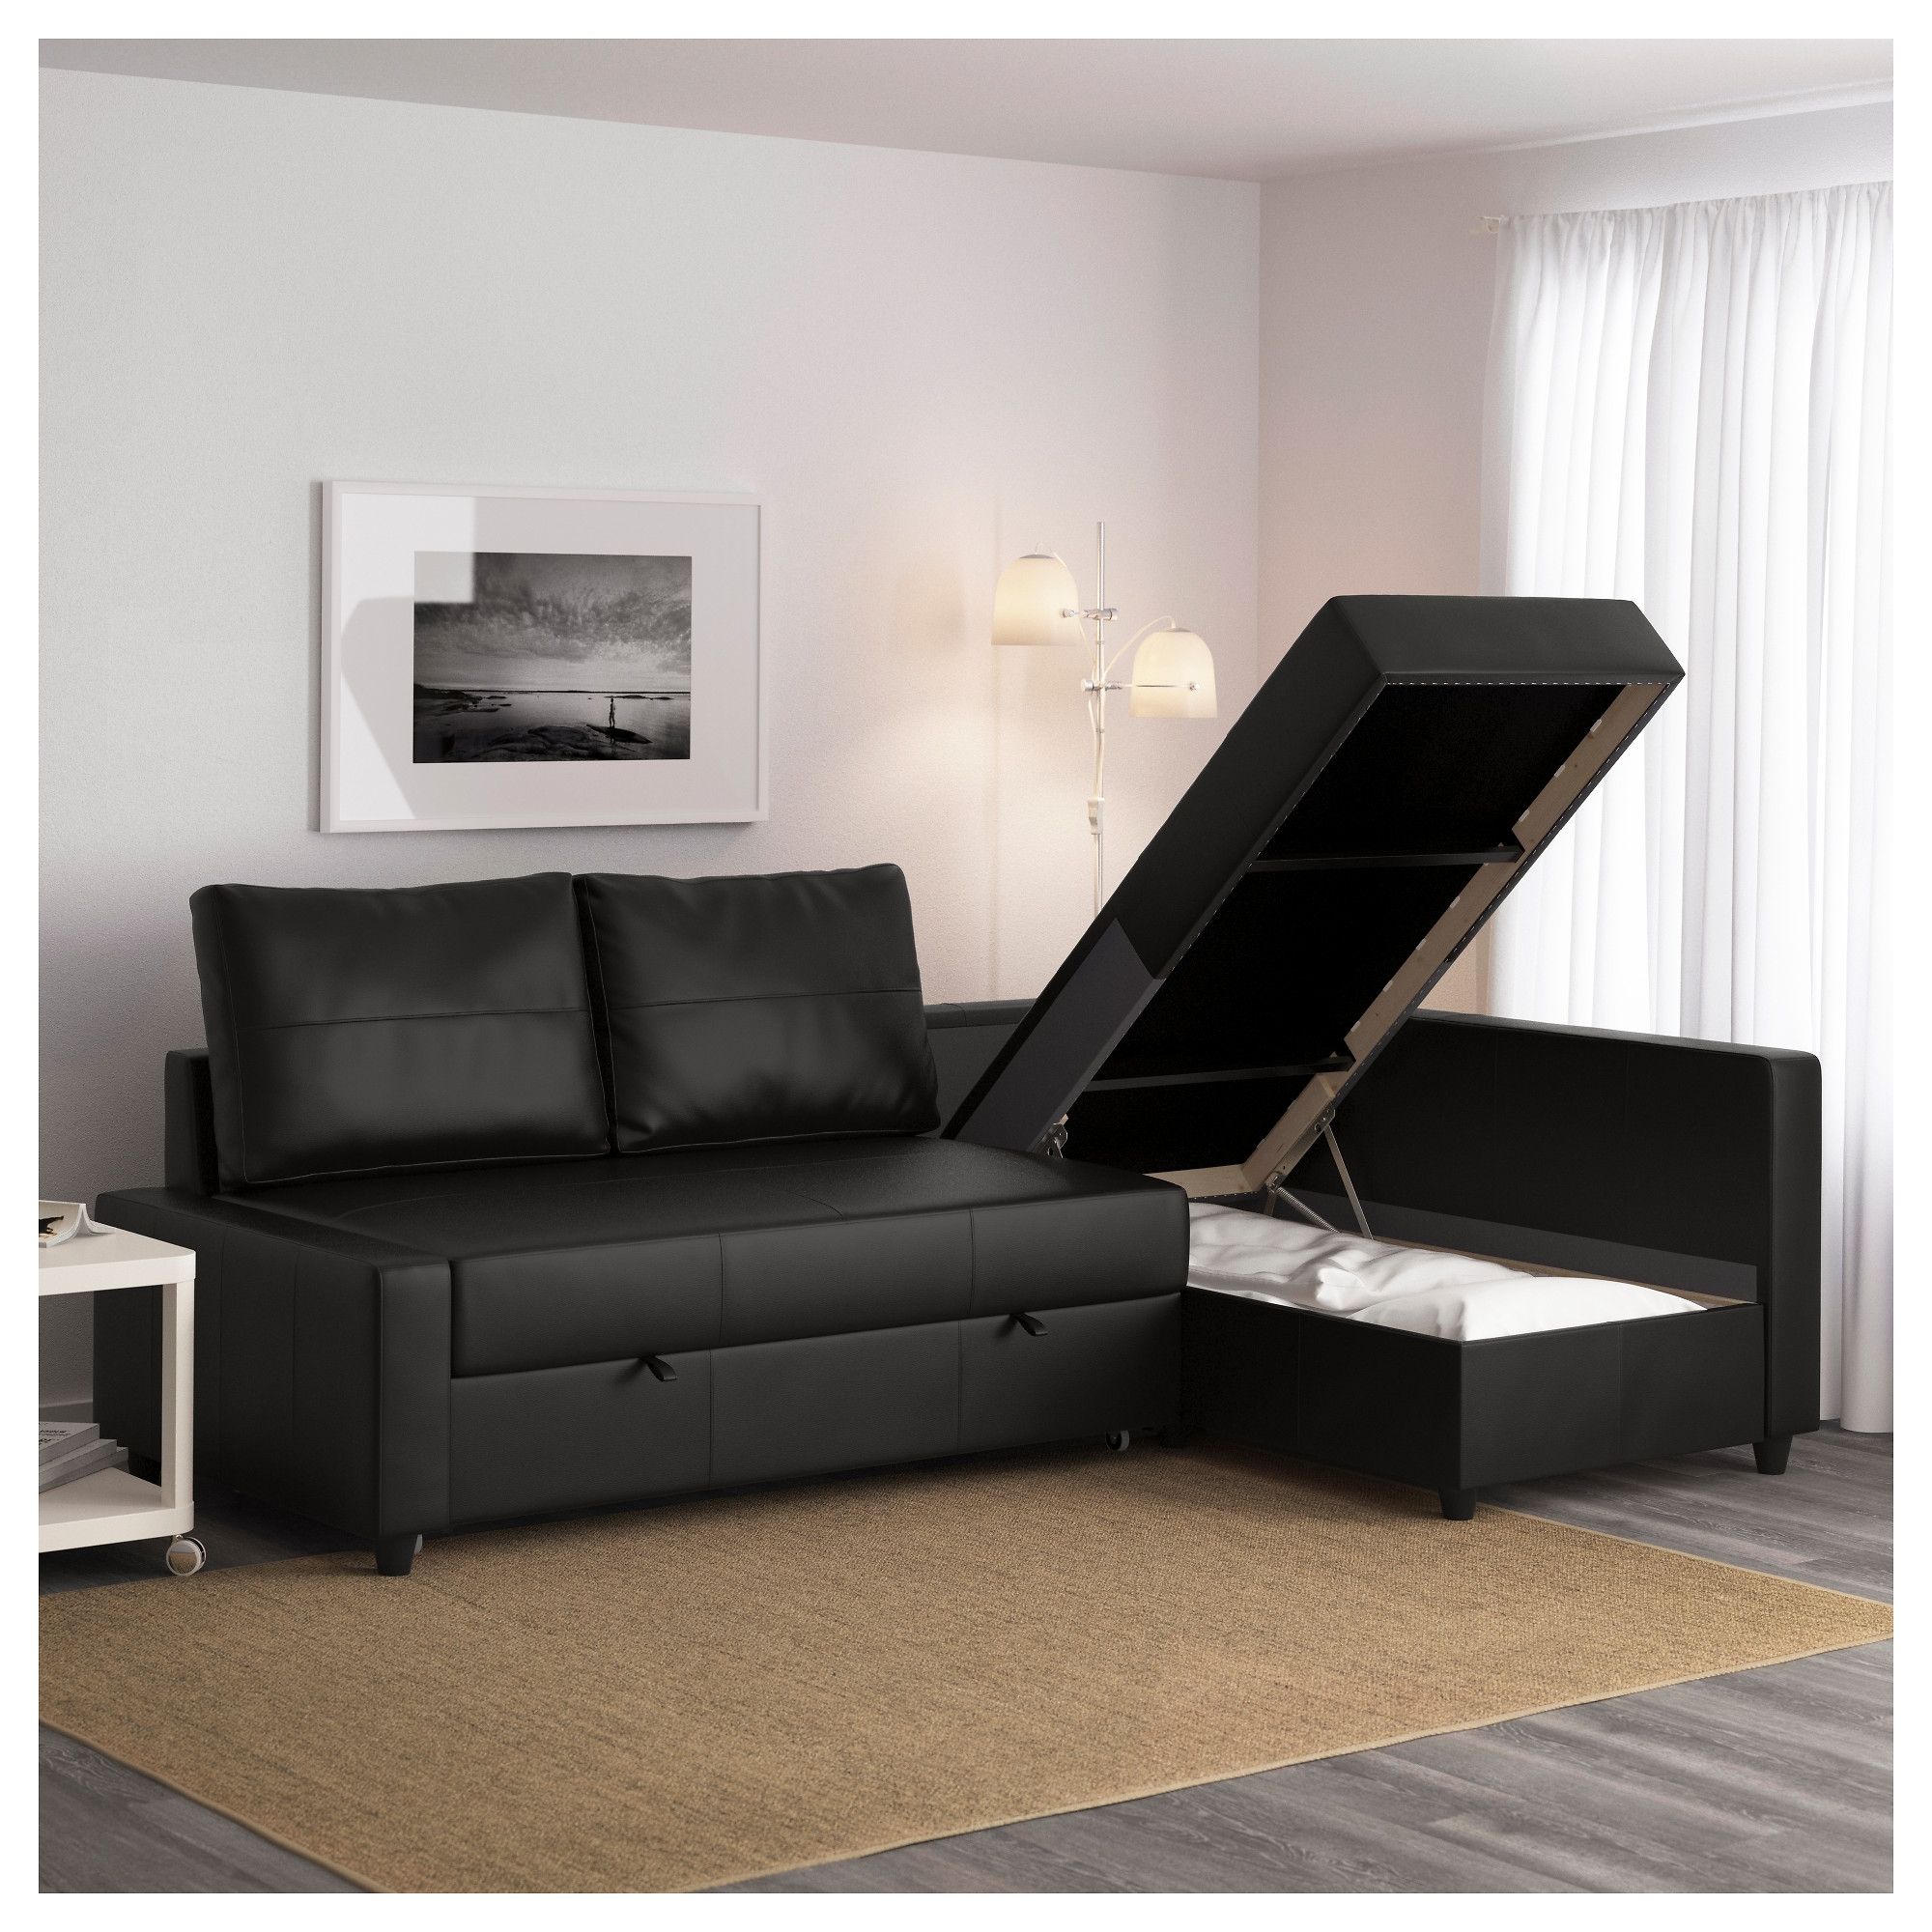 Sectional Sofas That Turn Into Beds In Most Recently Released Friheten Sleeper Sectional,3 Seat W/storage – Skiftebo Dark Gray (View 20 of 20)